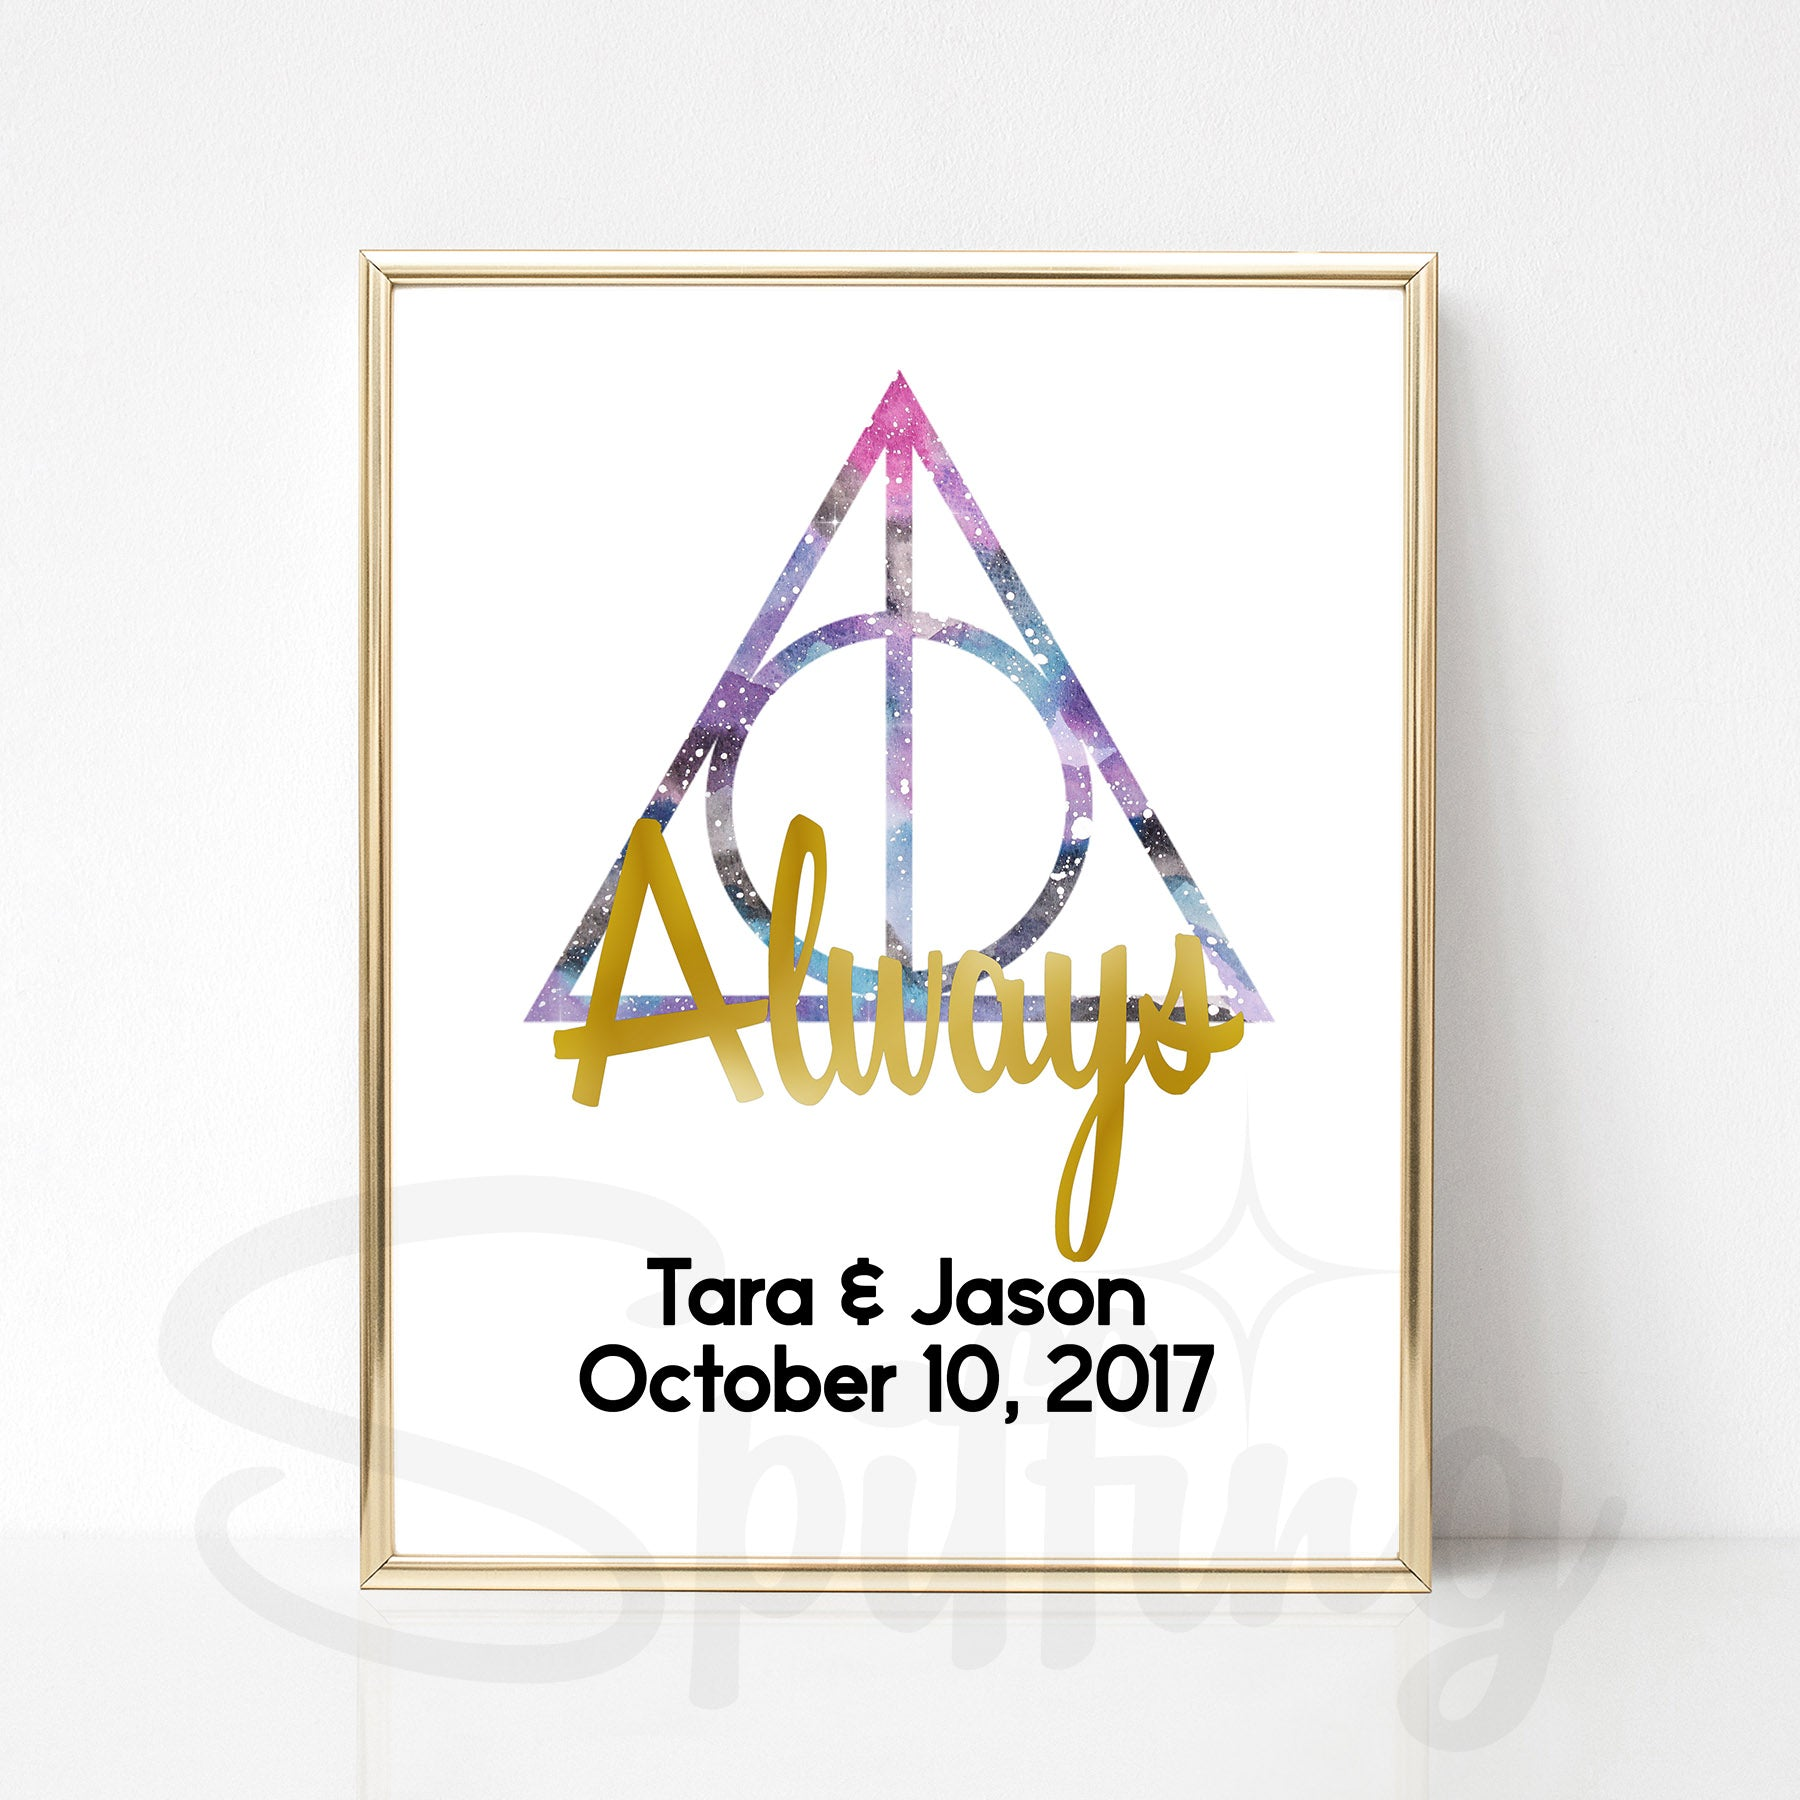 Personalized harry potter art print gold foil print custom personalized harry potter art print gold foil print custom wedding or anniversary gift biocorpaavc